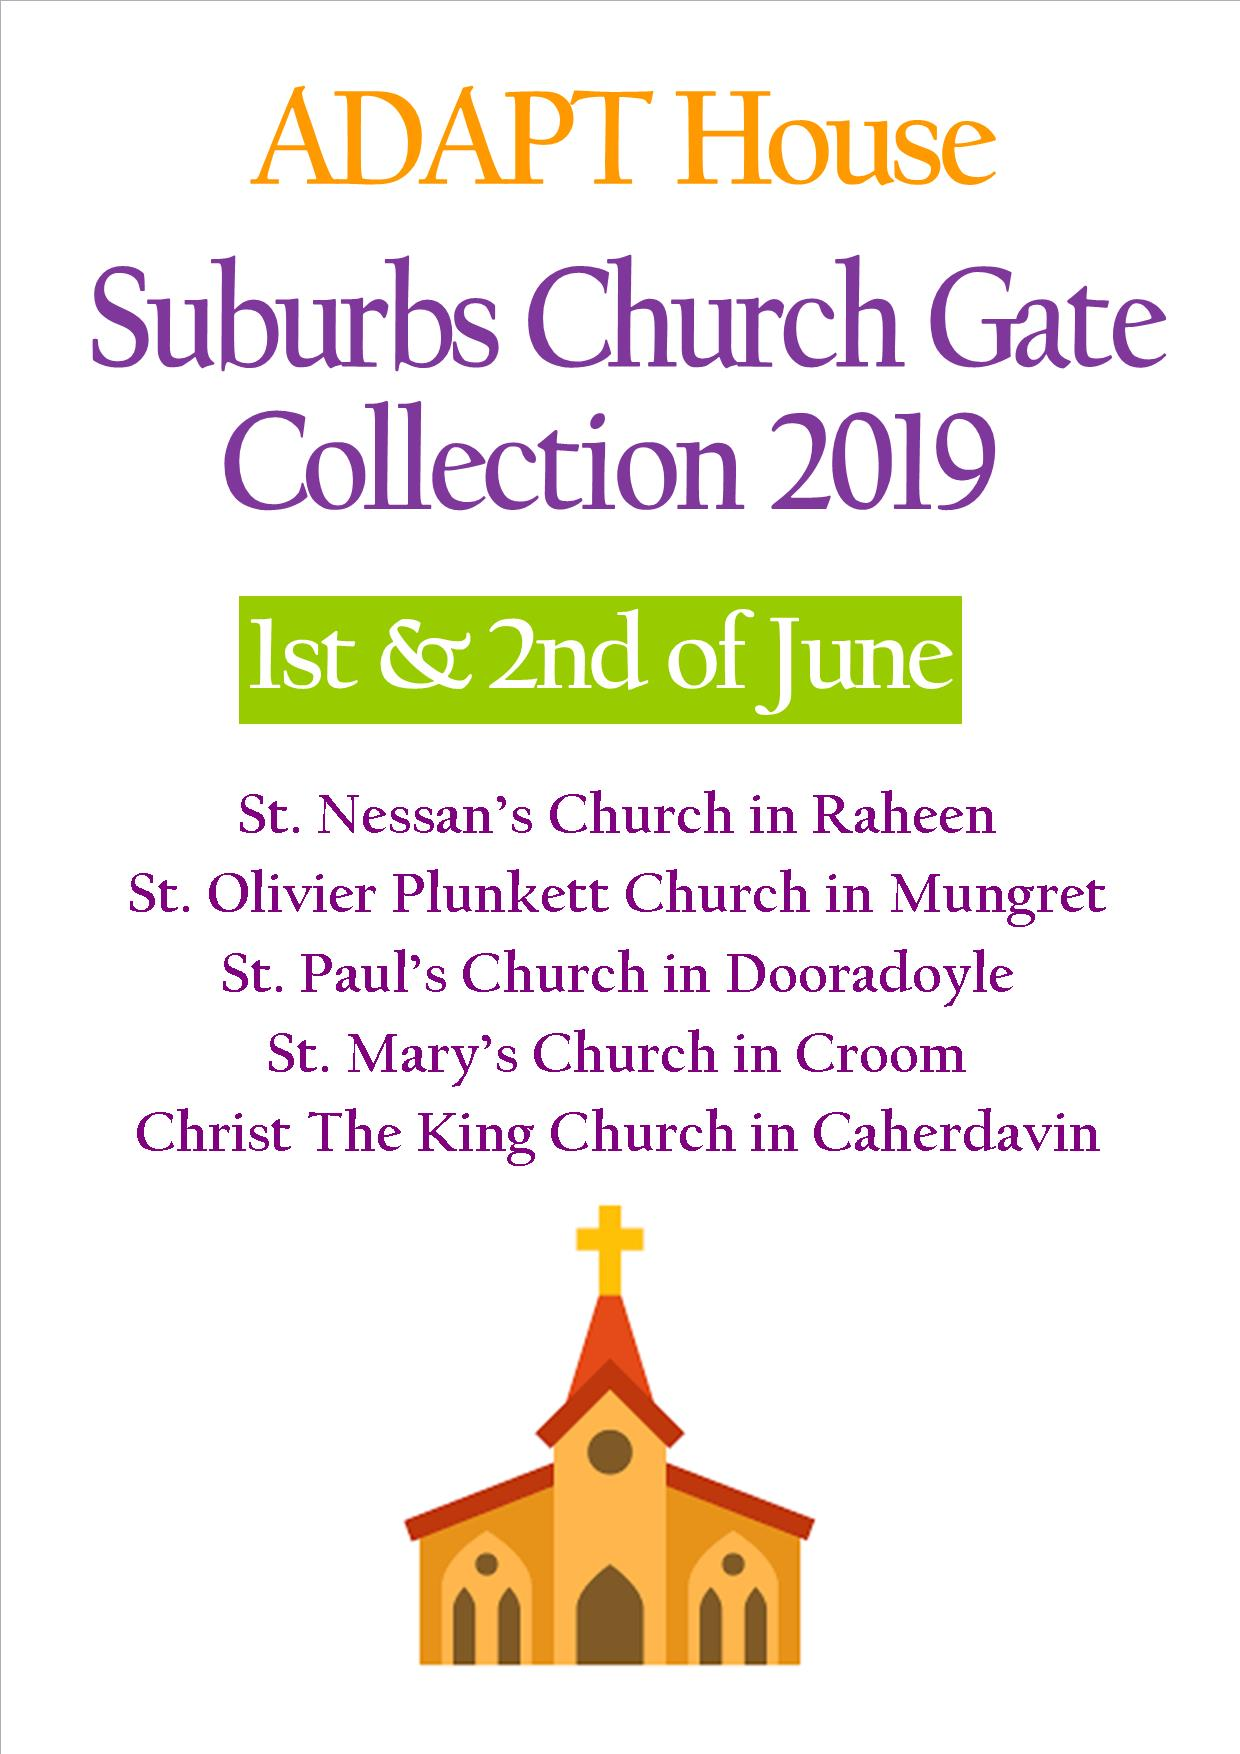 ADAPT Suburbs Church Gate Collection 1st-2nd of June 2019